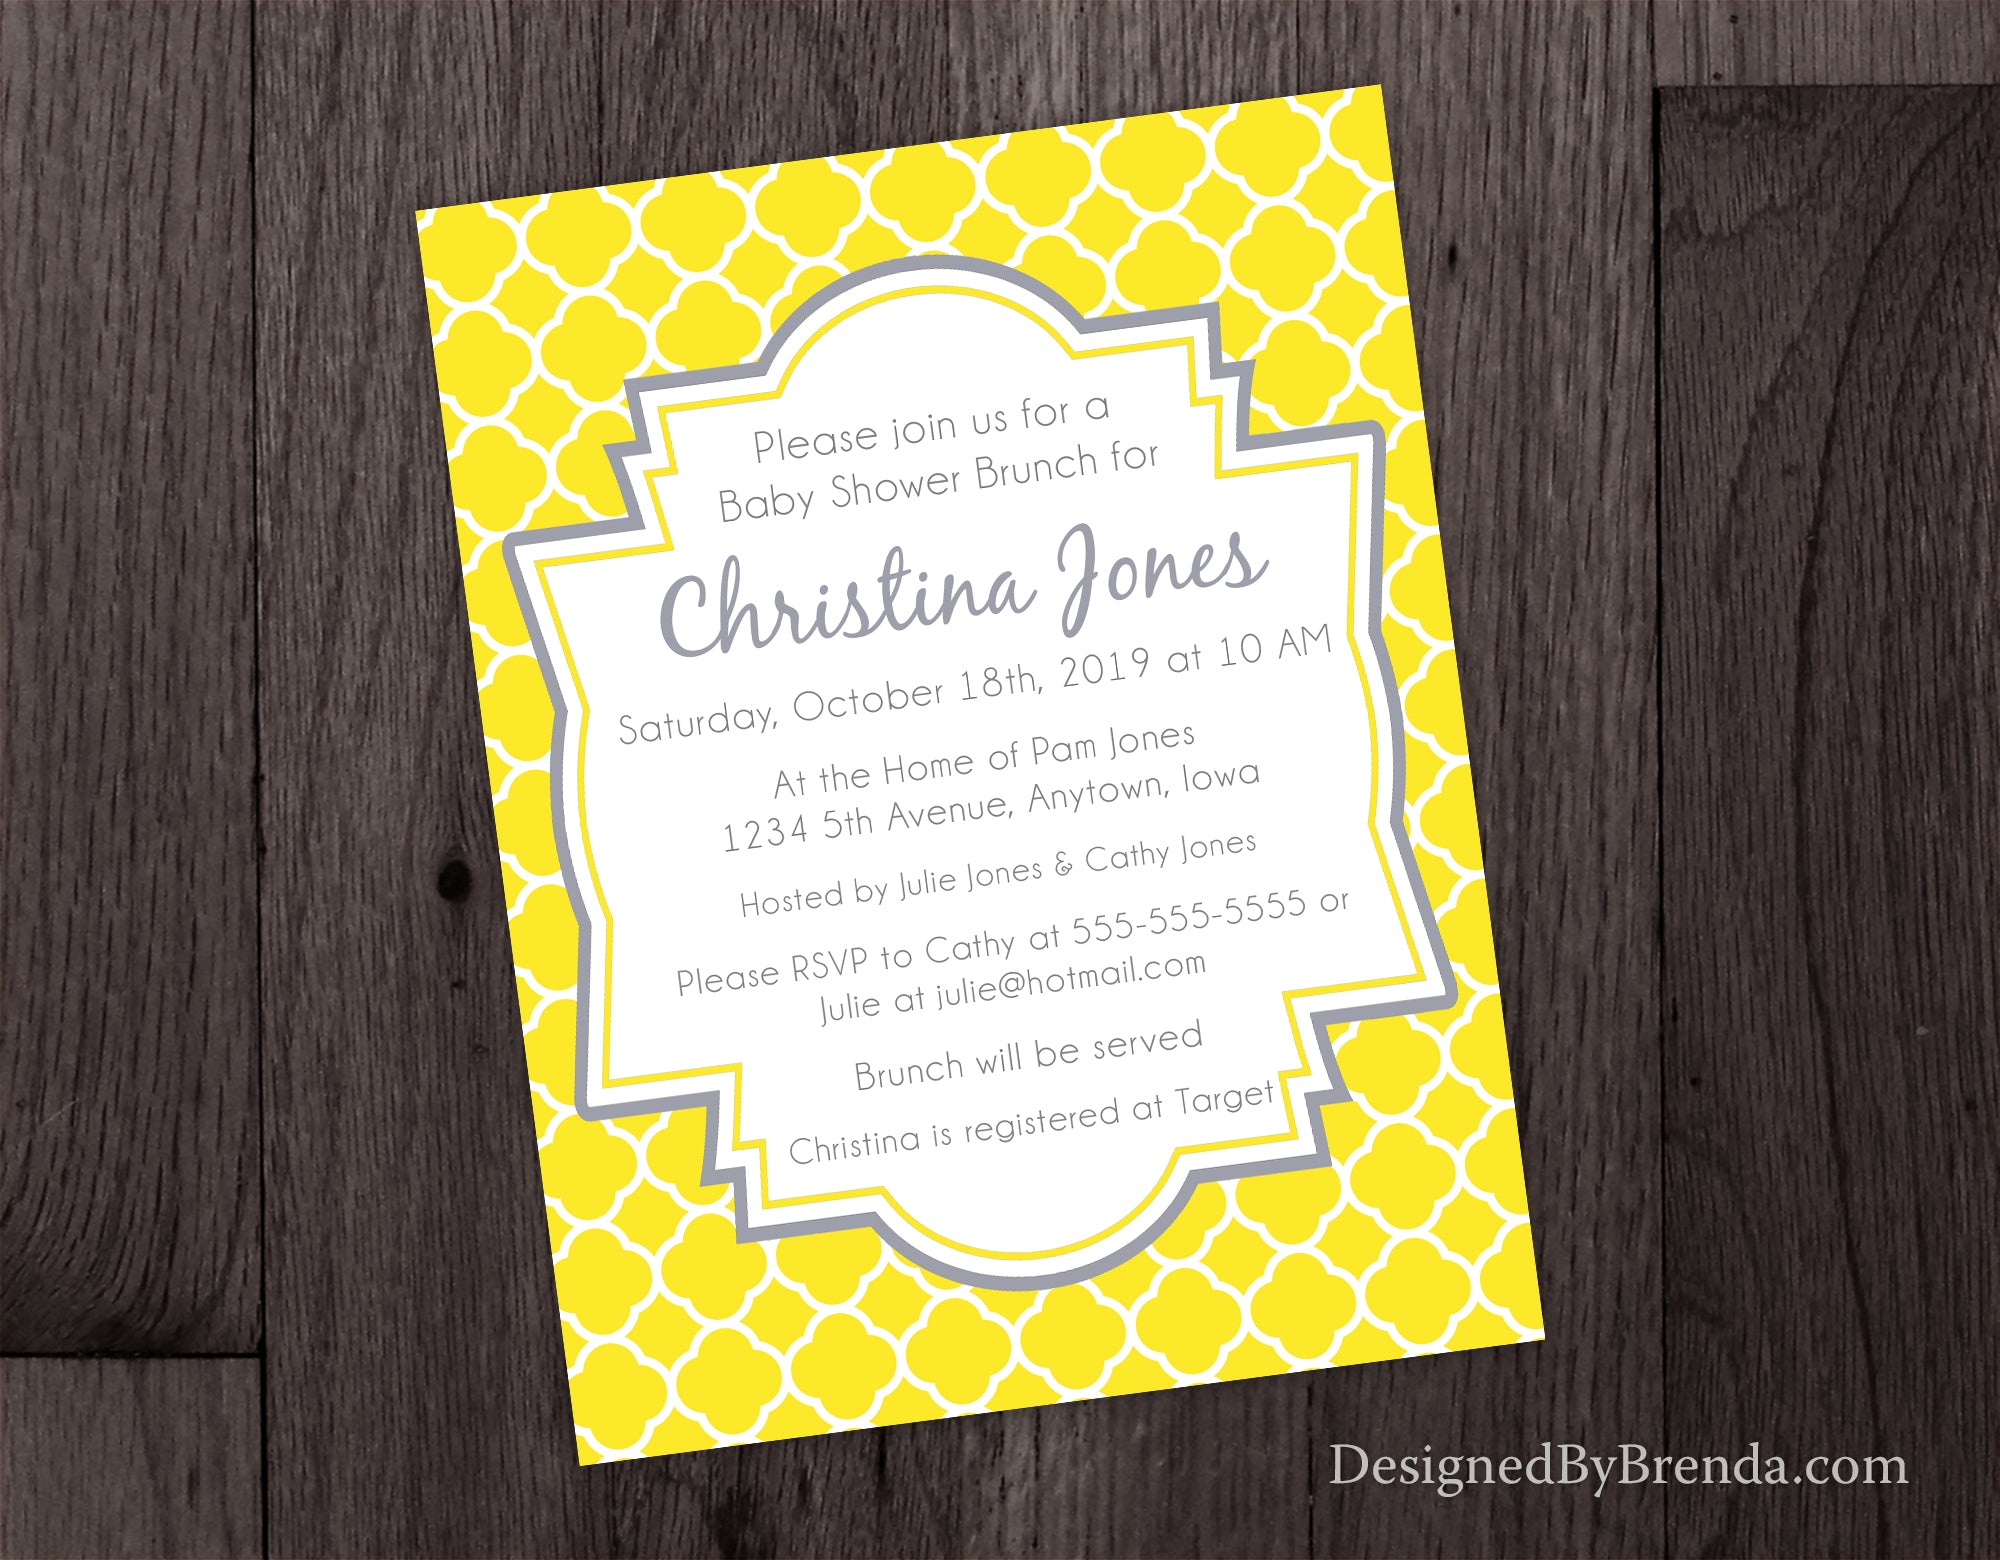 Quatrefoil bridal or baby shower invitations yellow and grey quatrefoil bridal or baby shower invitations yellow and grey stopboris Gallery